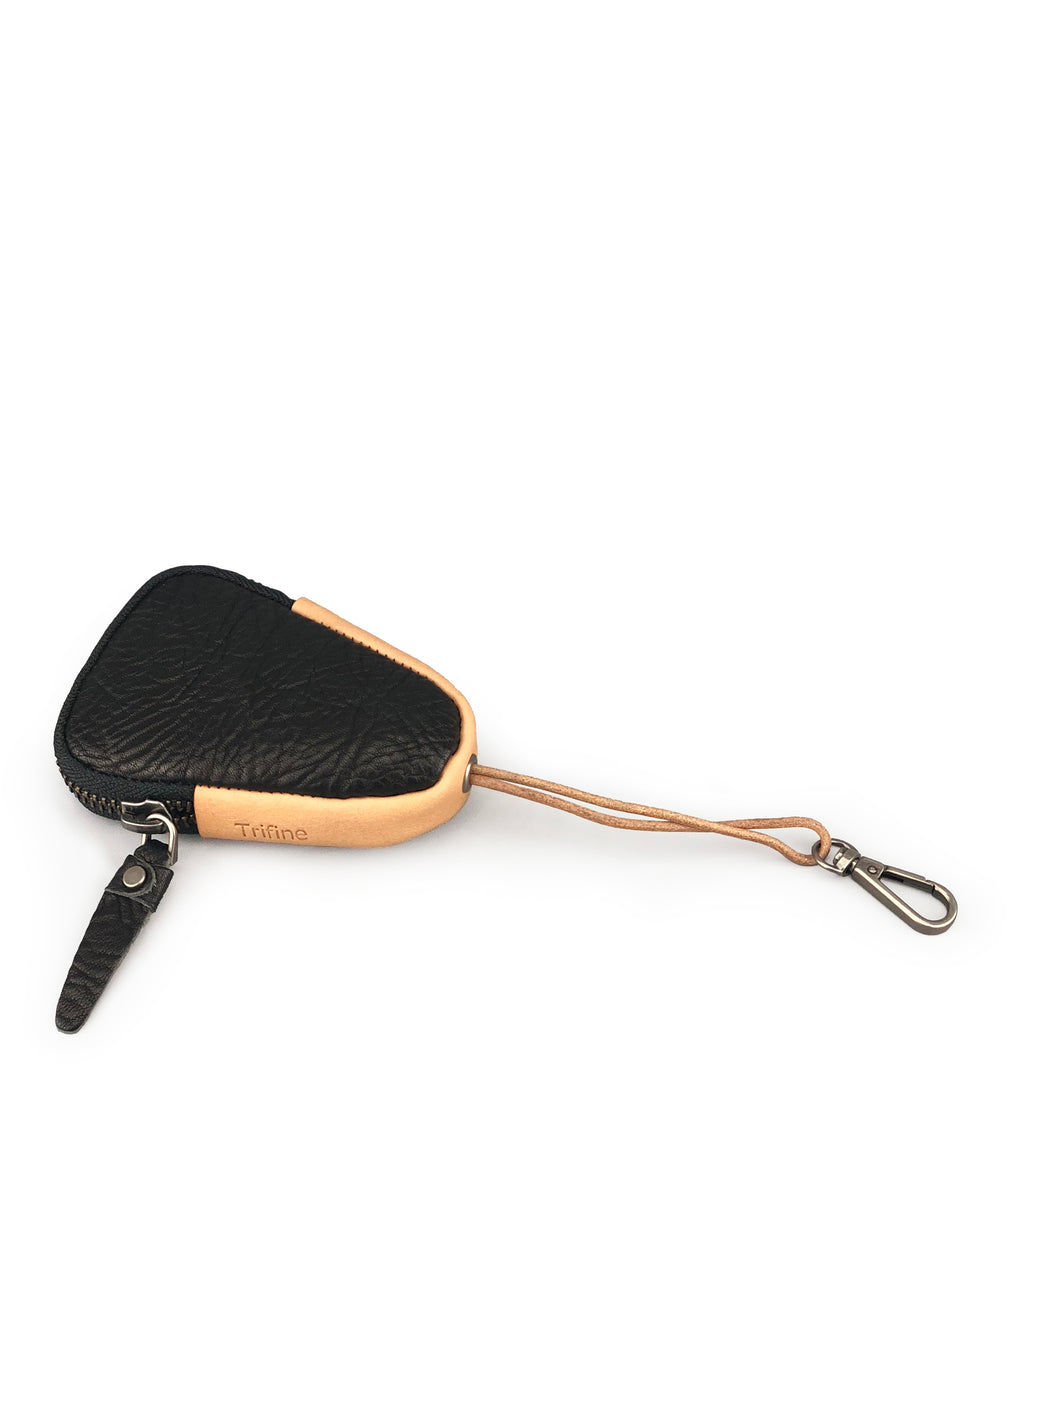 Triangle Leather Key Holder - Black